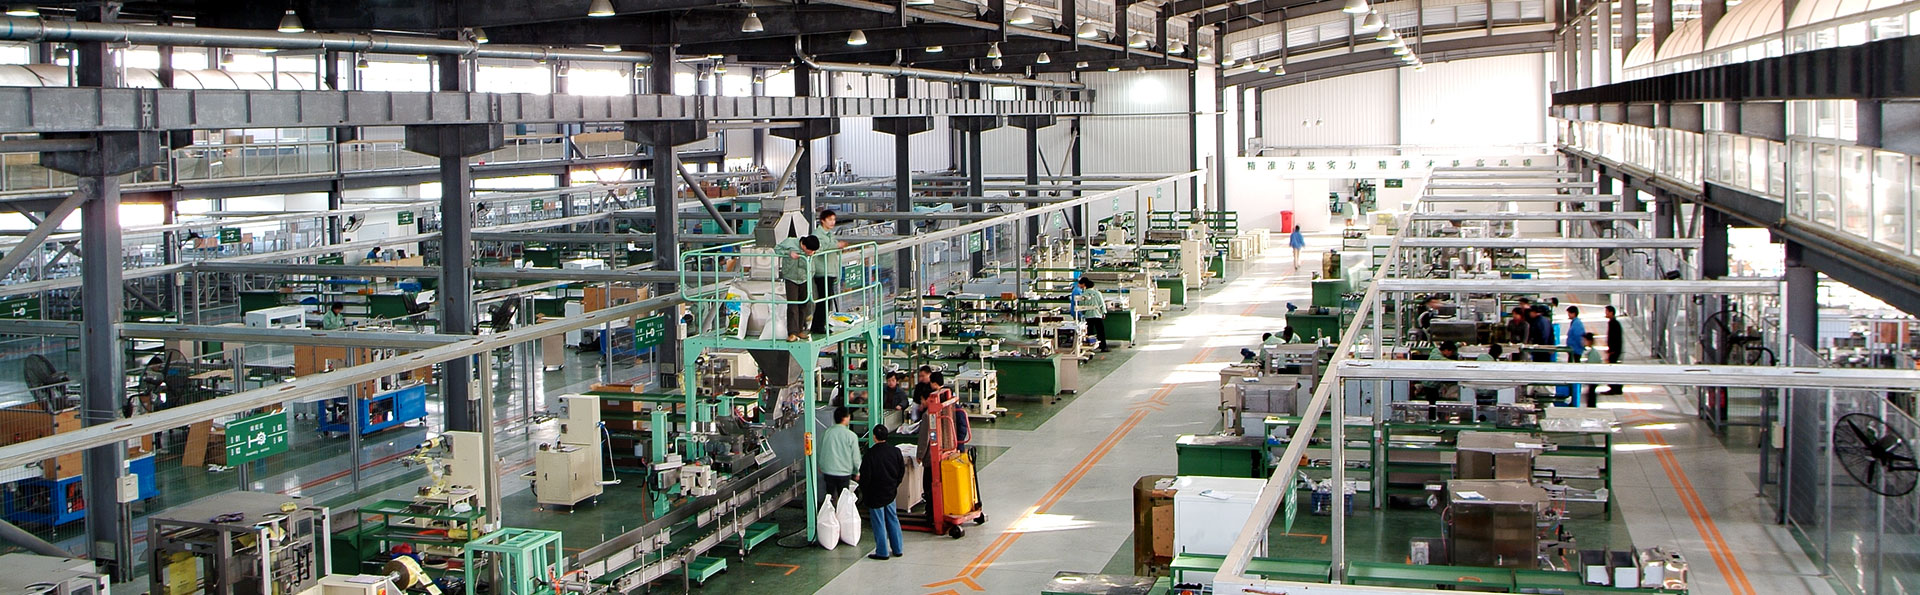 Soontrue Vertical Packing Machine Plant